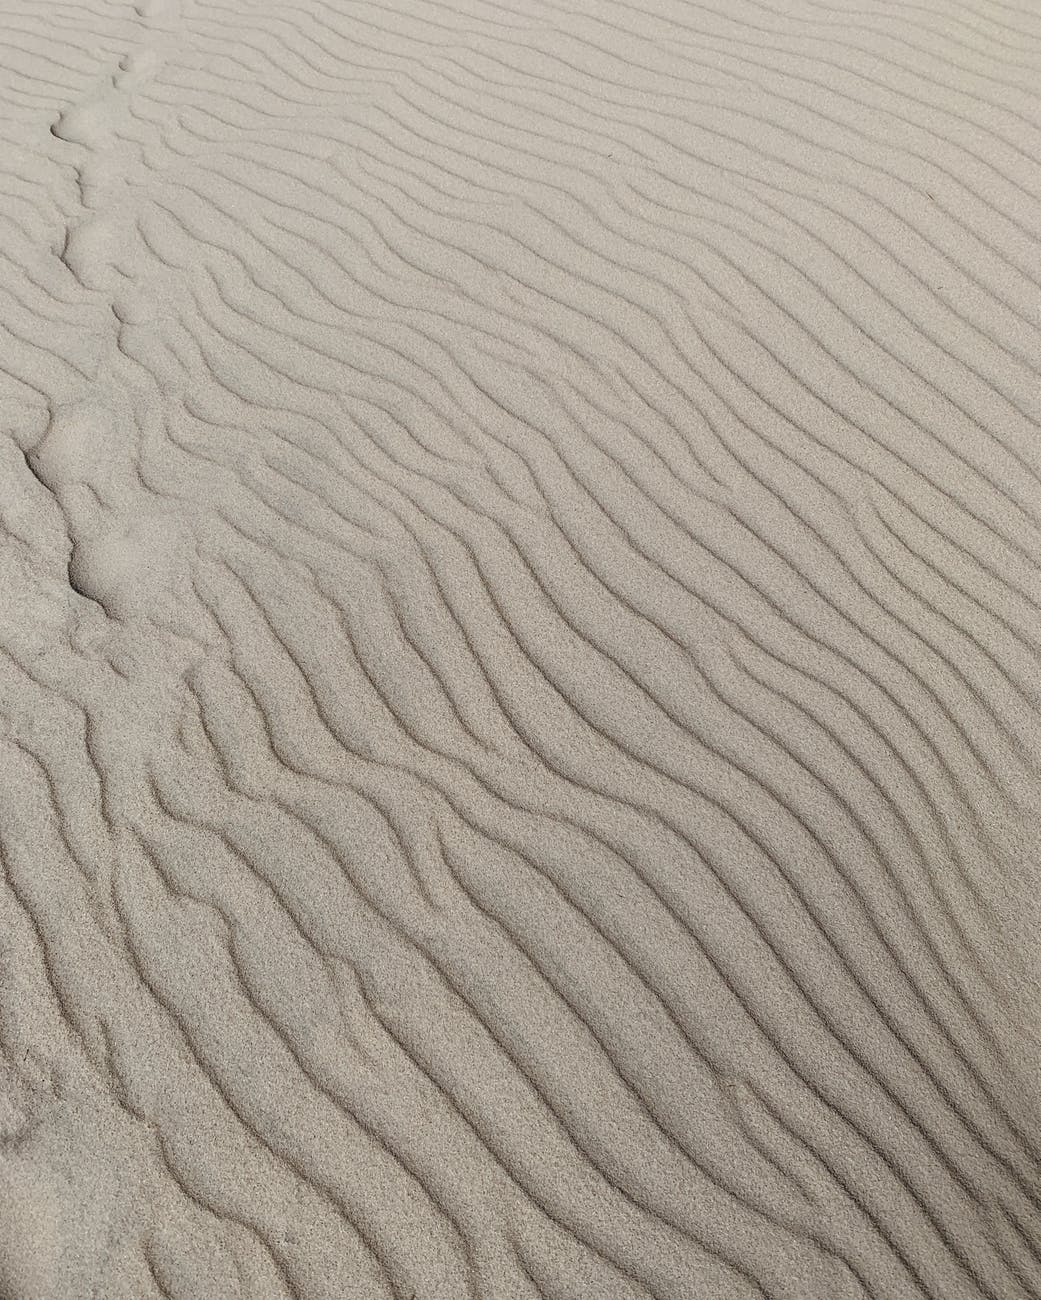 sand formation in the desert